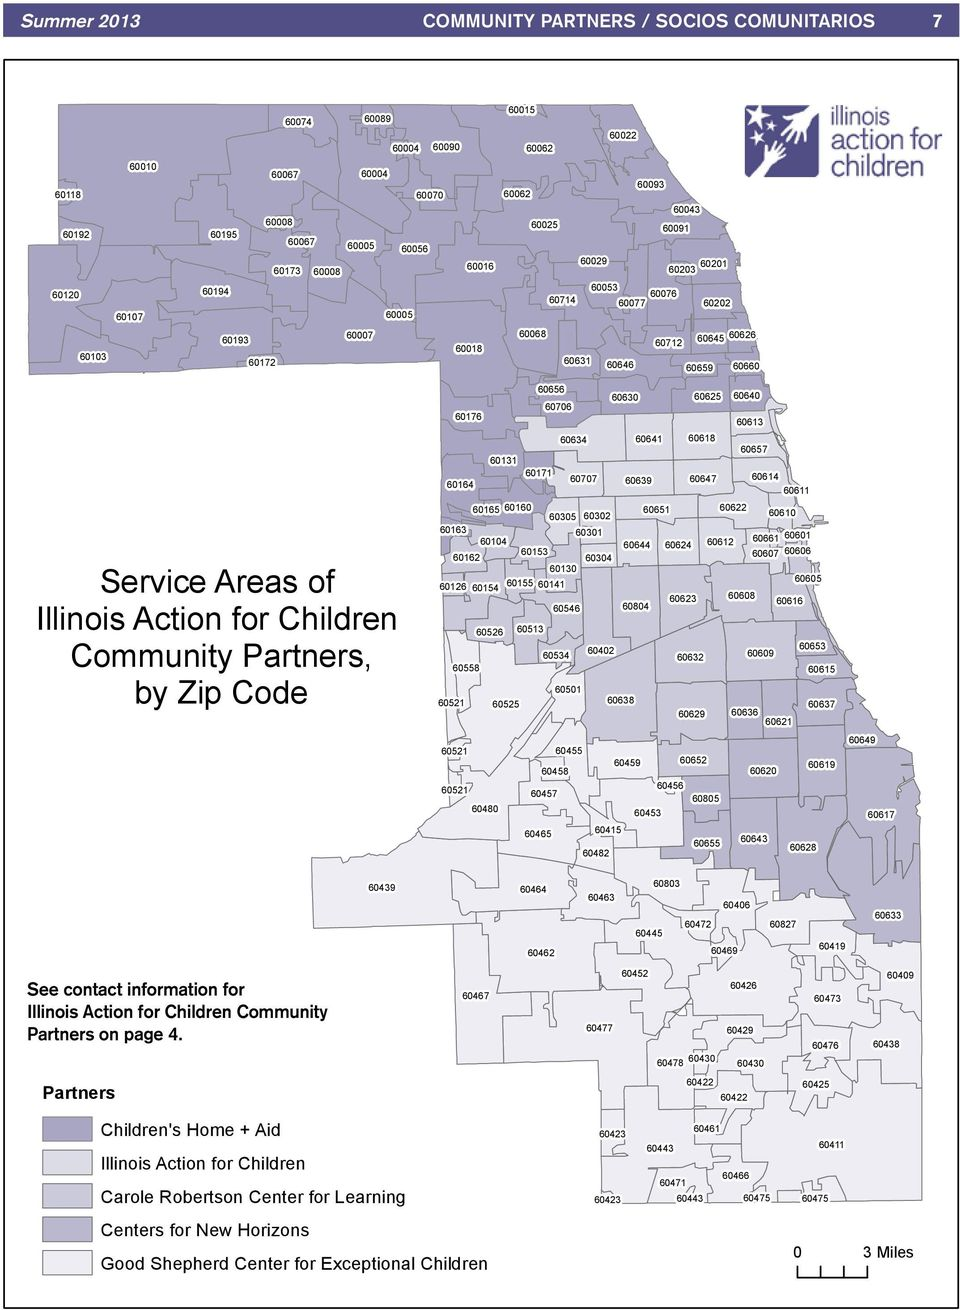 Children Community Partners, by Zip Code 60656 60630 60625 60640 60706 60176 60613 60634 60641 60618 60657 60131 60164 60171 60707 60639 60647 60614 60611 60165 60160 60305 60302 60651 60622 60610